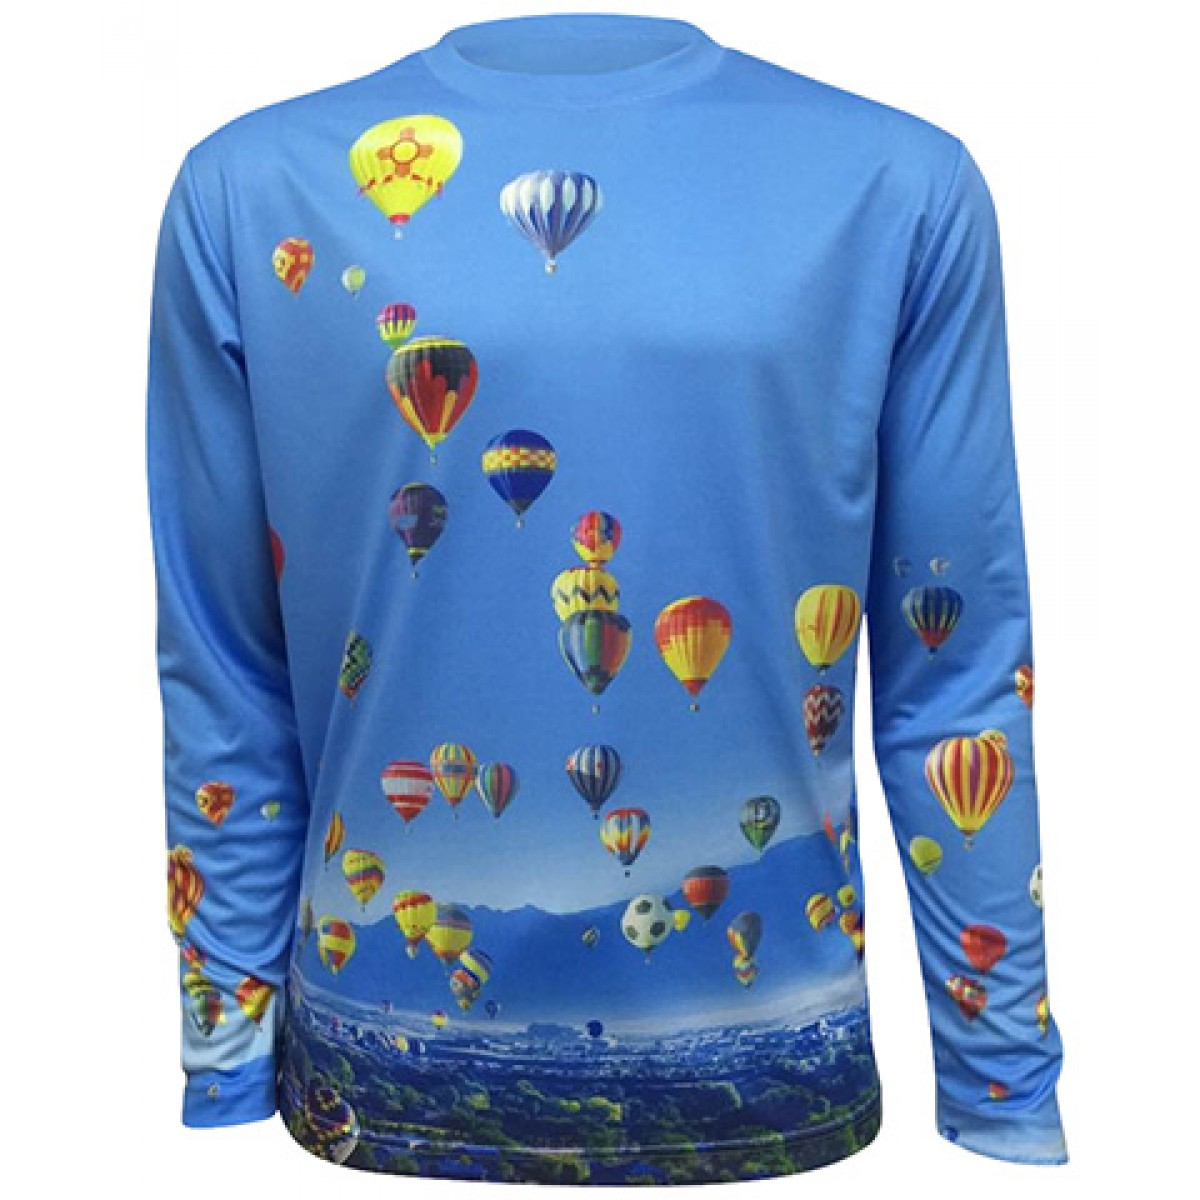 AIBF Sublimated Long Sleeve-Blue-YM